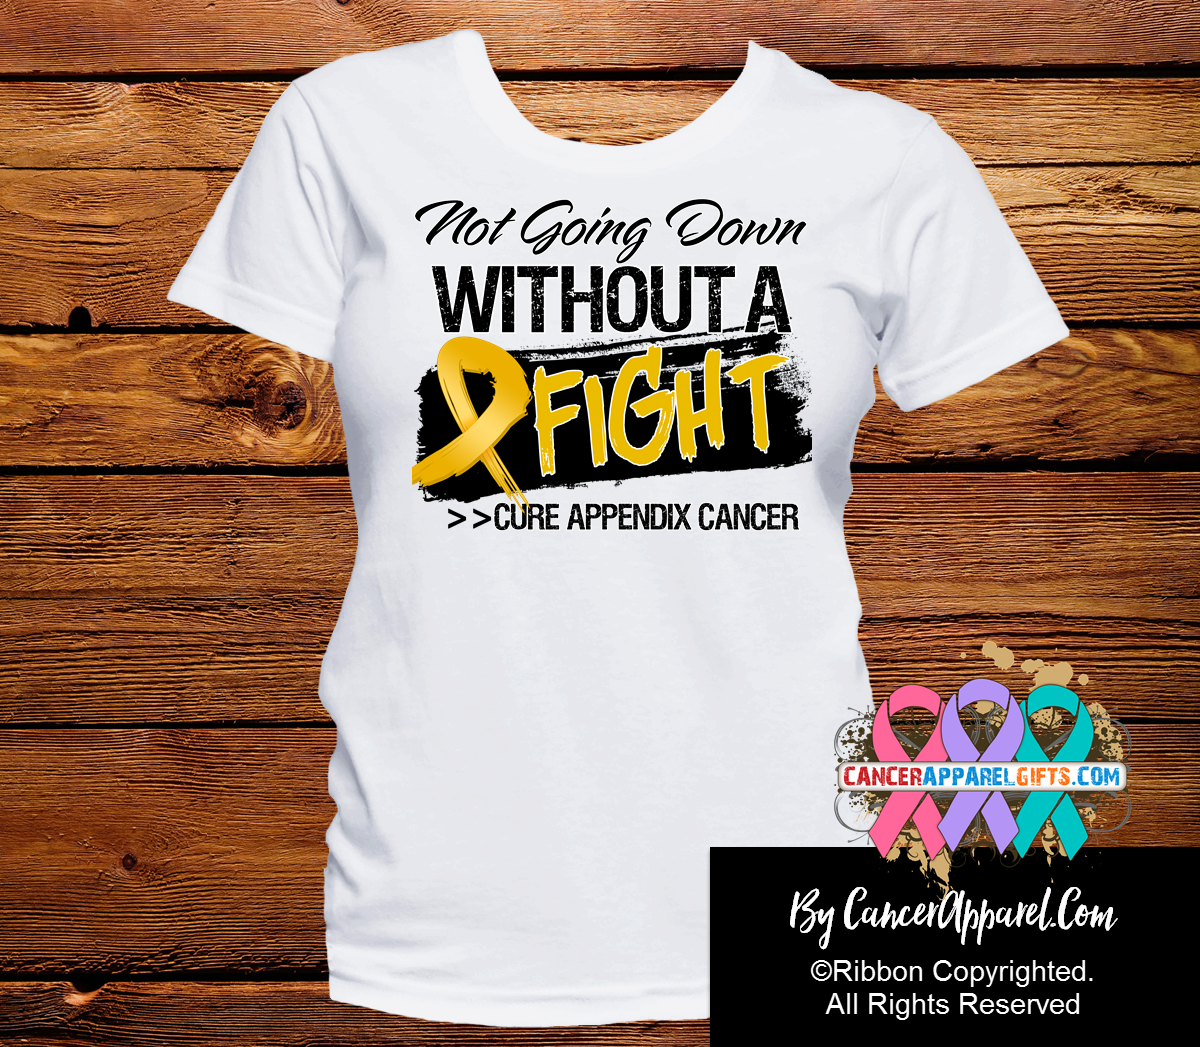 Appendix Cancer Not Going Down Without a Fight Shirts - Cancer Apparel and Gifts